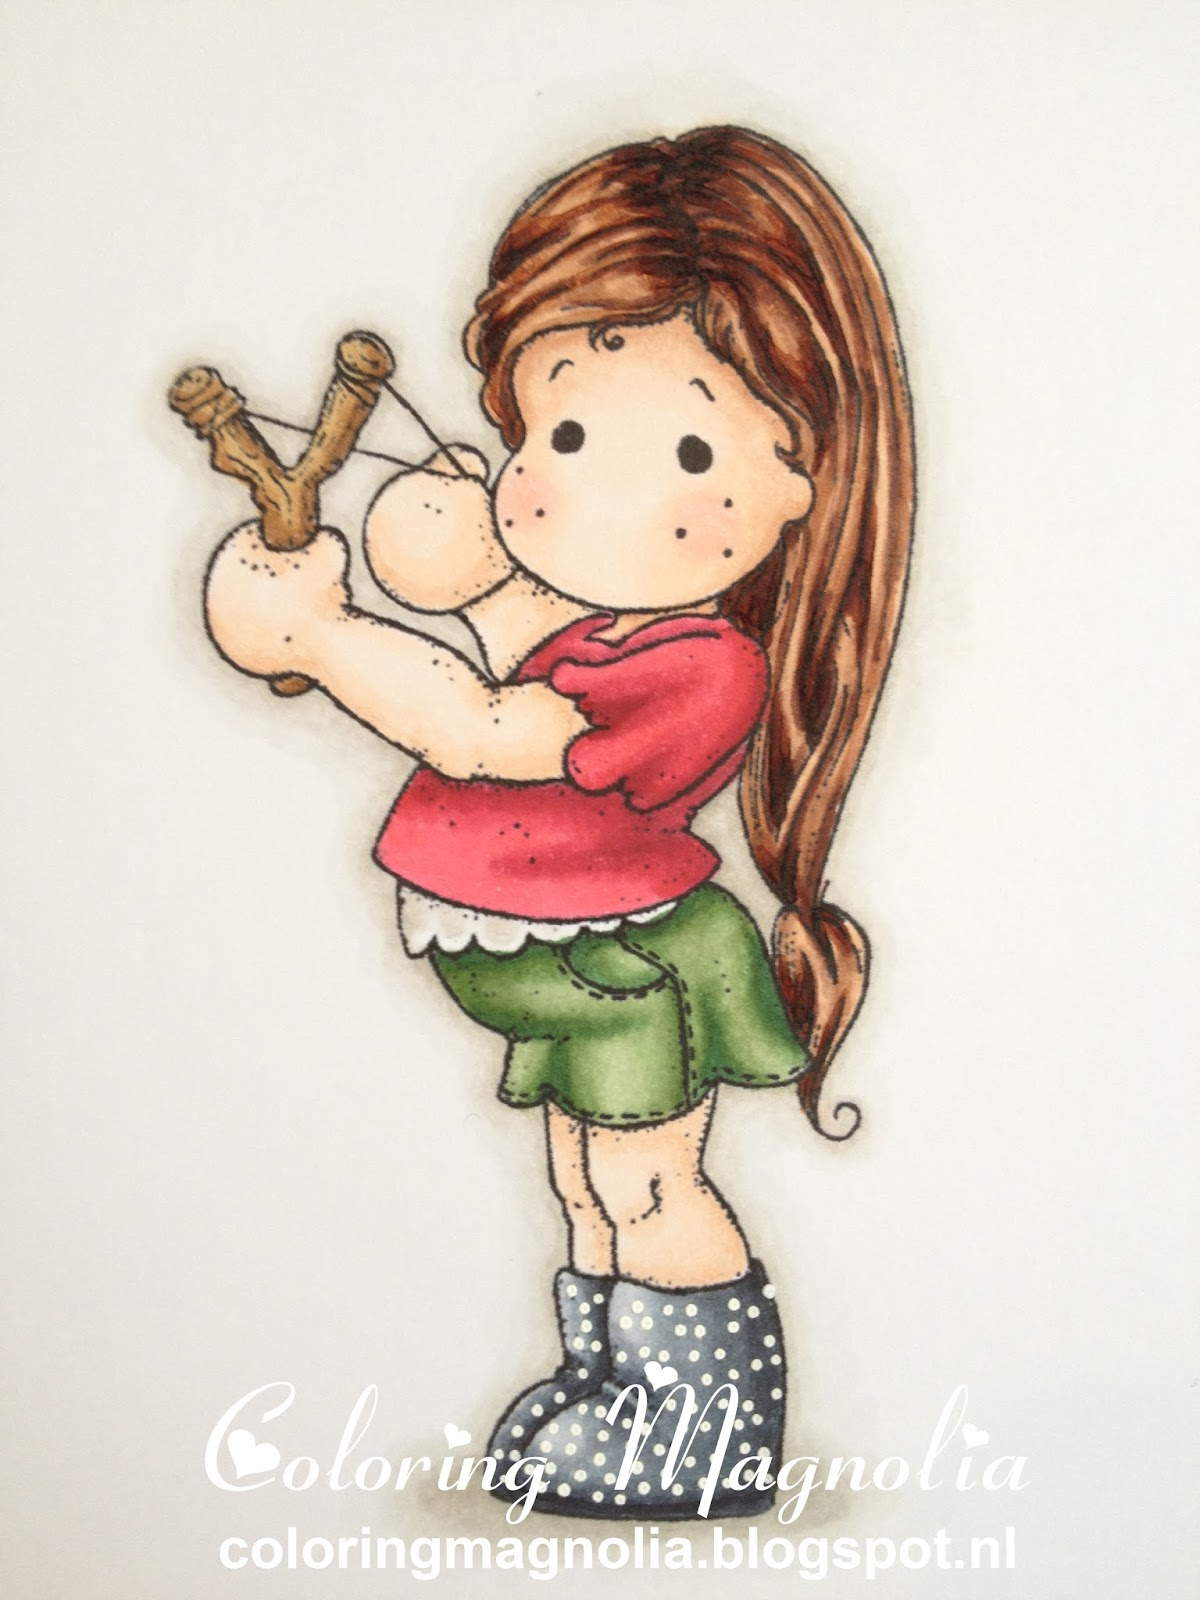 Coloring Magnolia Stamp 2013 With Love Collection - Tilda With Slingshot